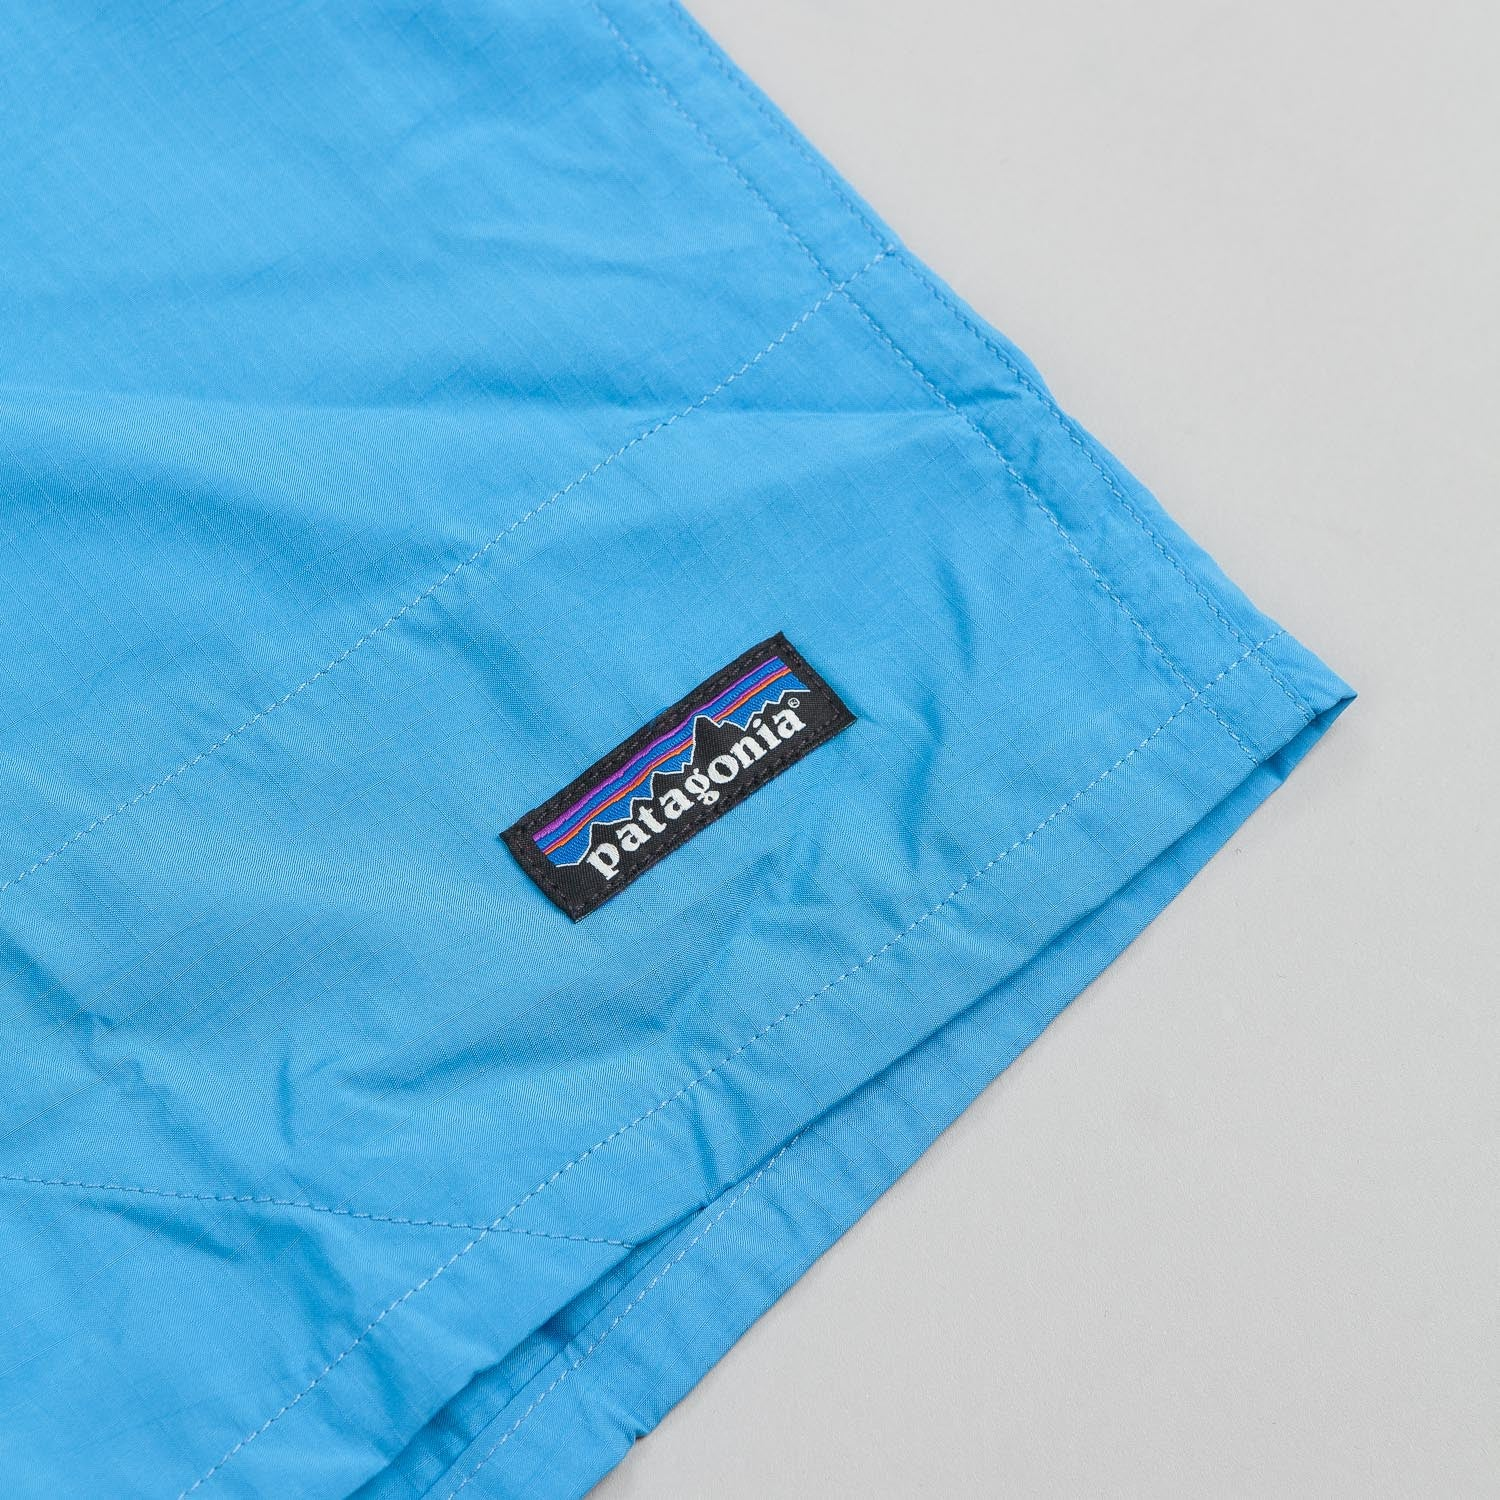 Patagonia Baggies Lights Shorts - Skipper Blue